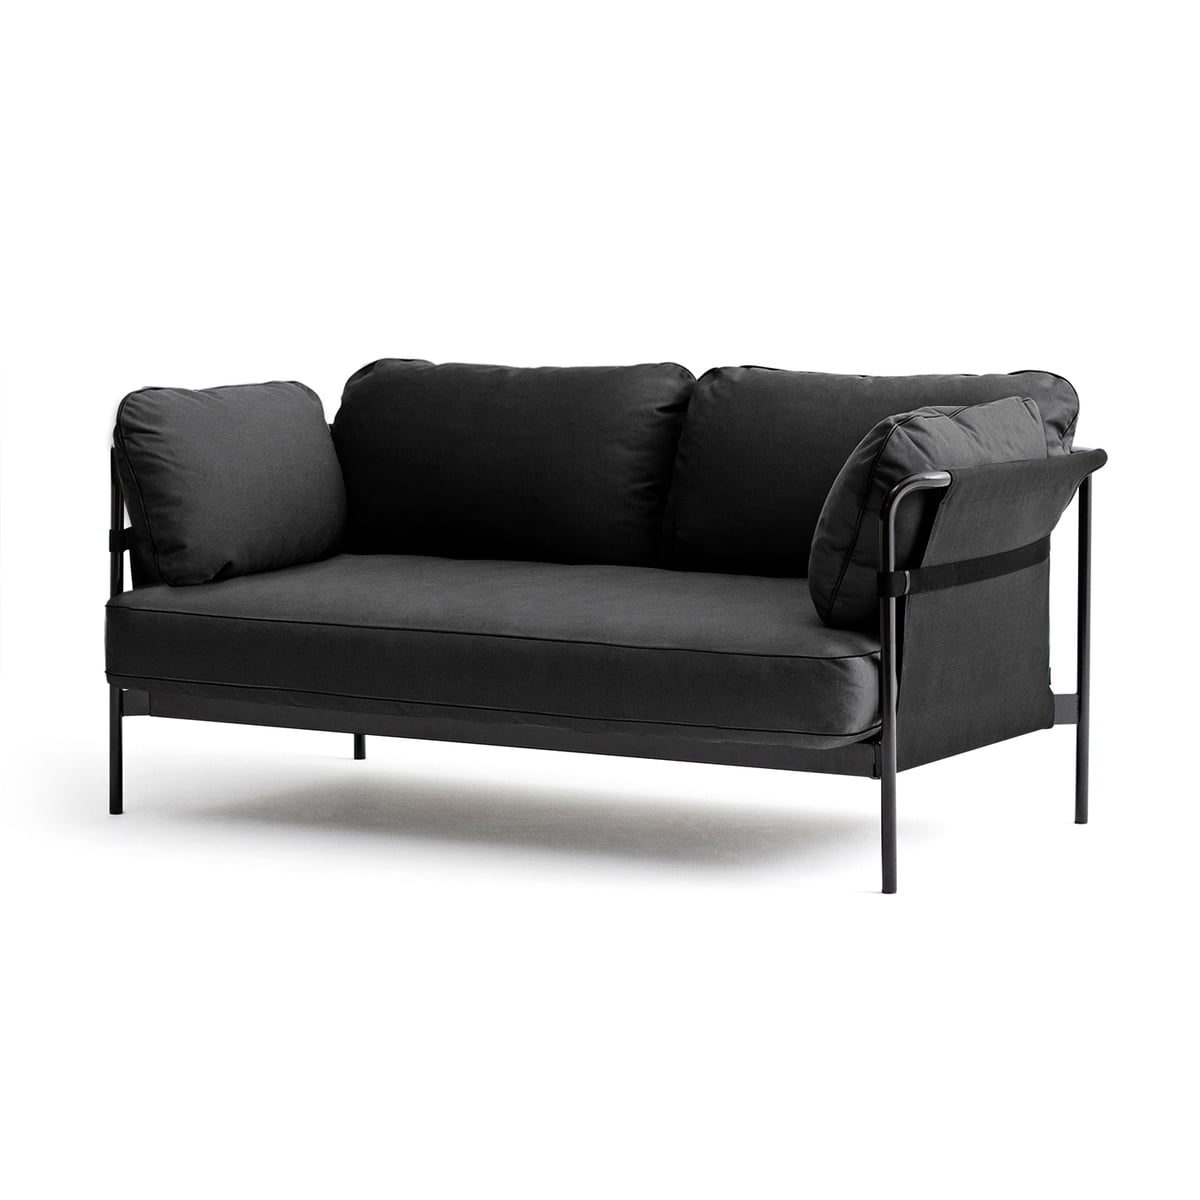 2 sofa 2 seater sofa custom made thesofa. Black Bedroom Furniture Sets. Home Design Ideas